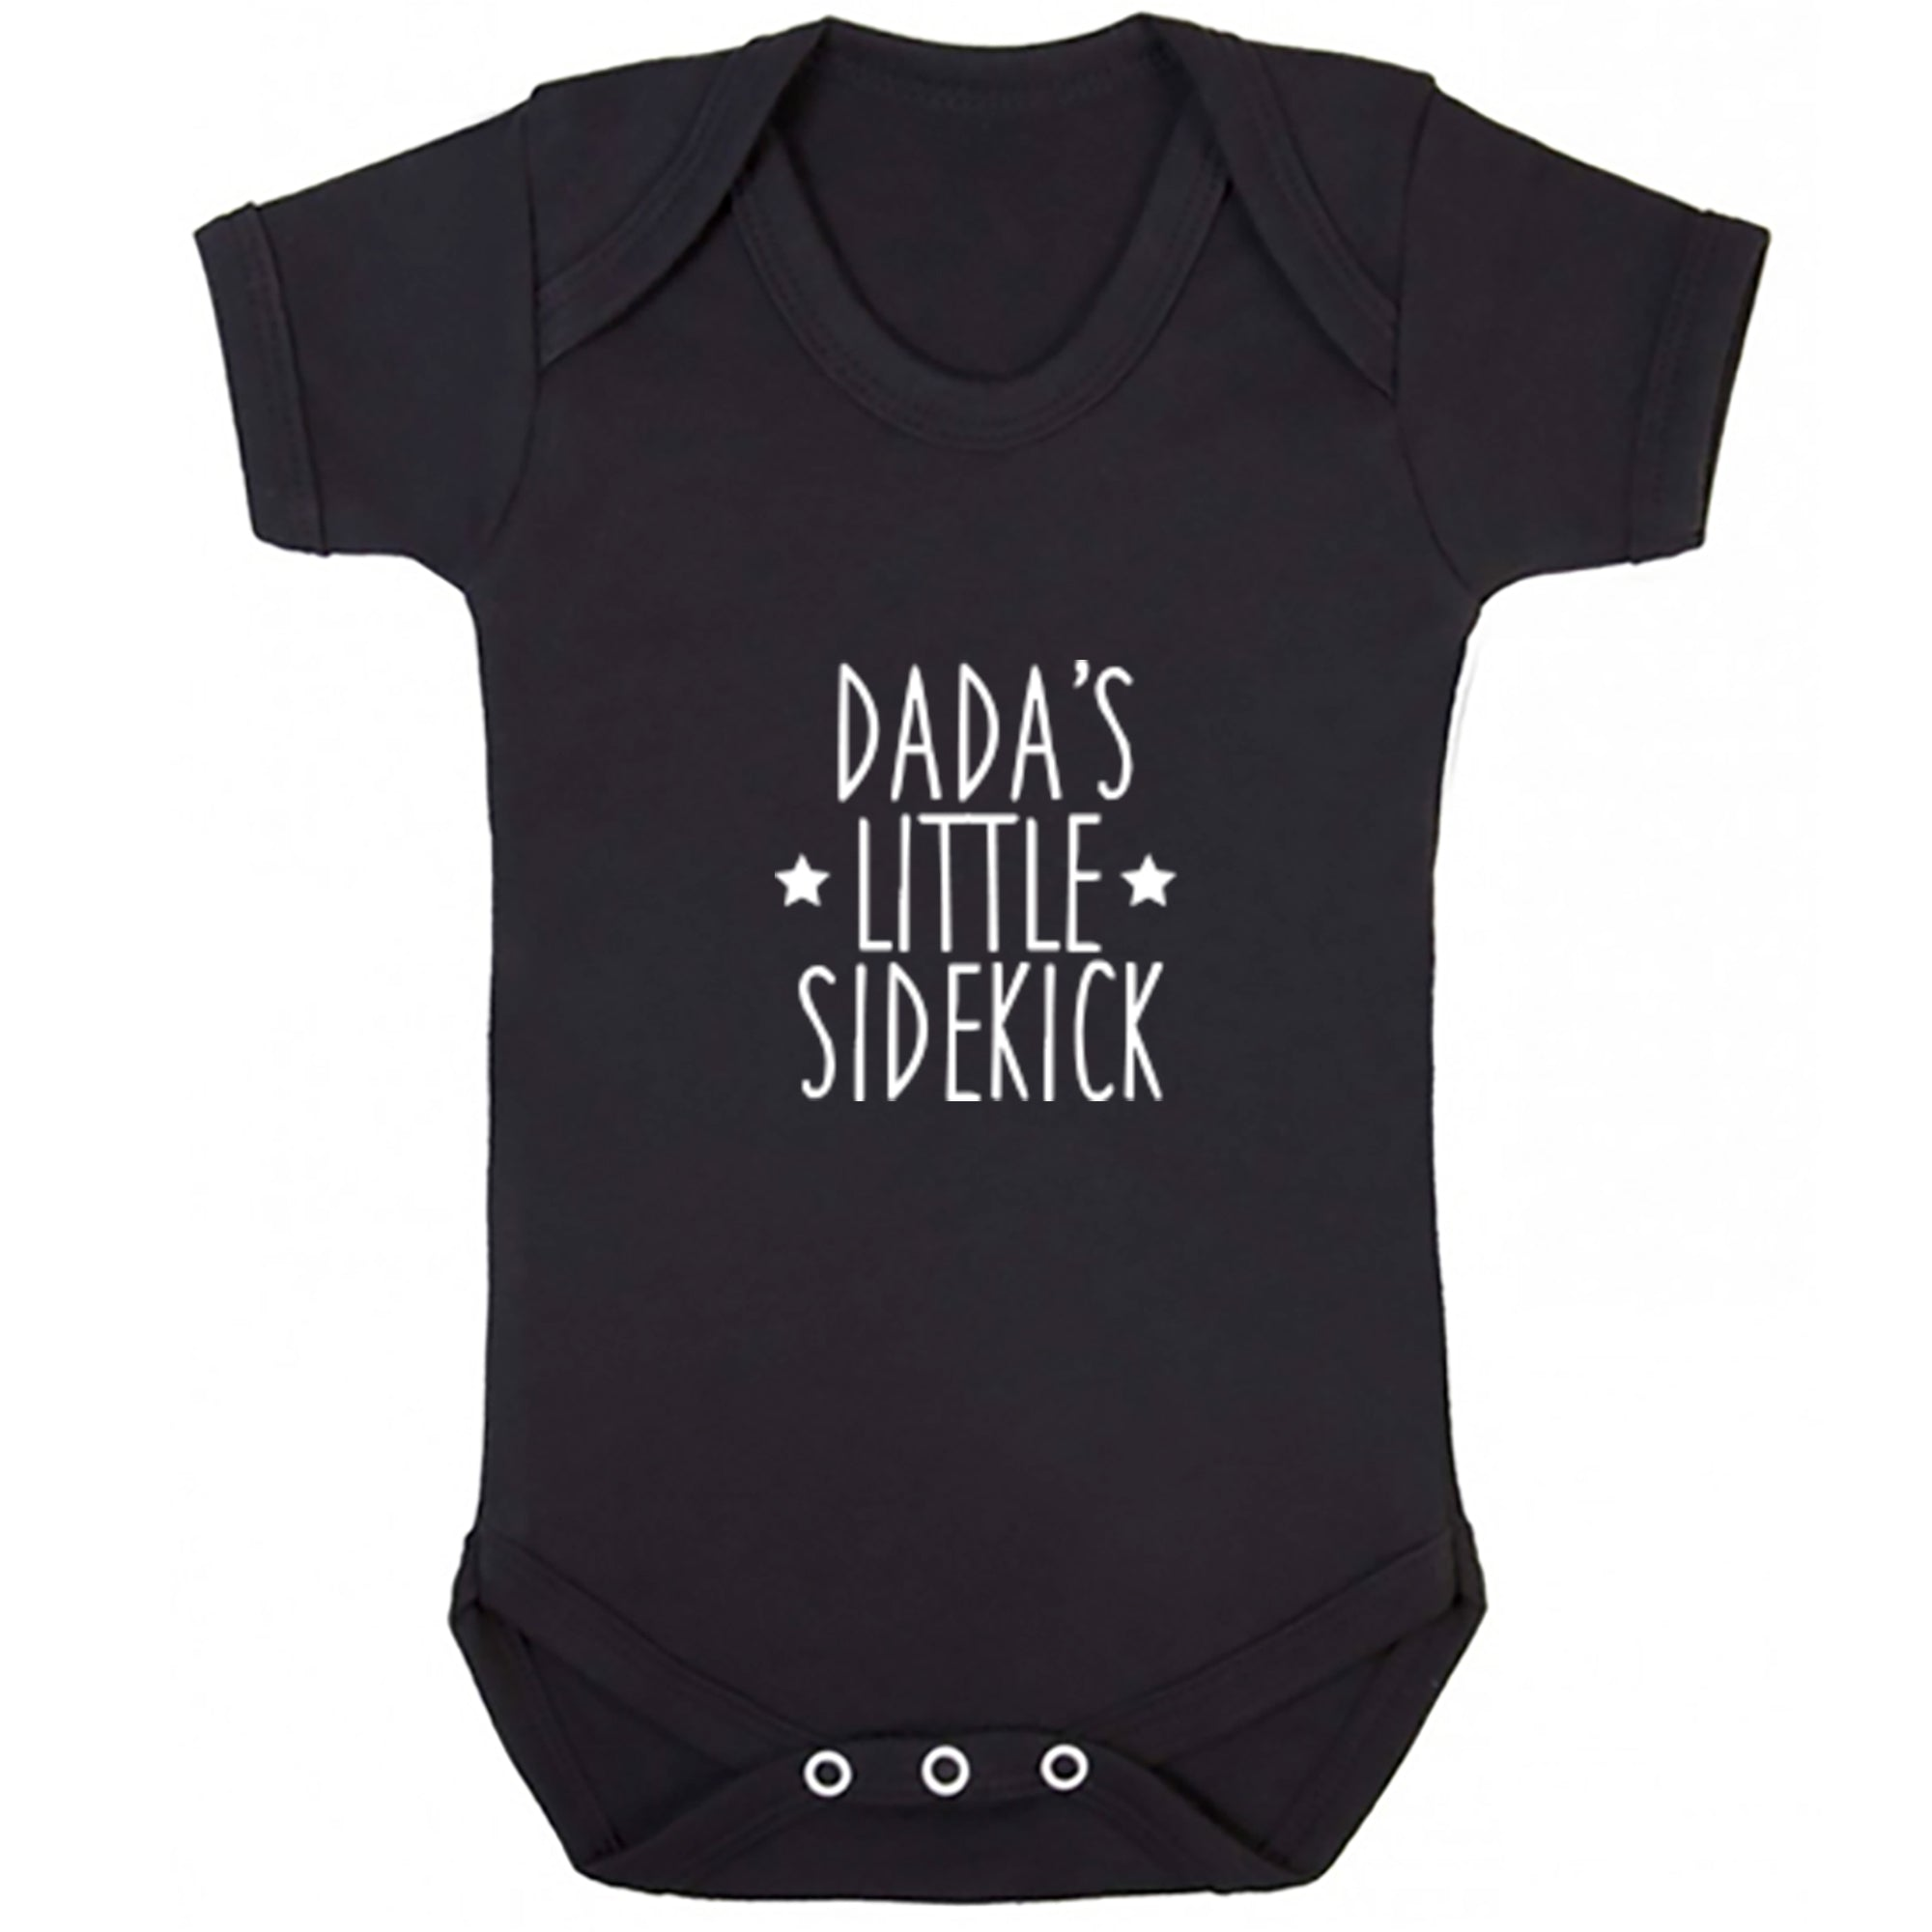 Dada's Little Sidekick Baby Vest S0903 - Illustrated Identity Ltd.